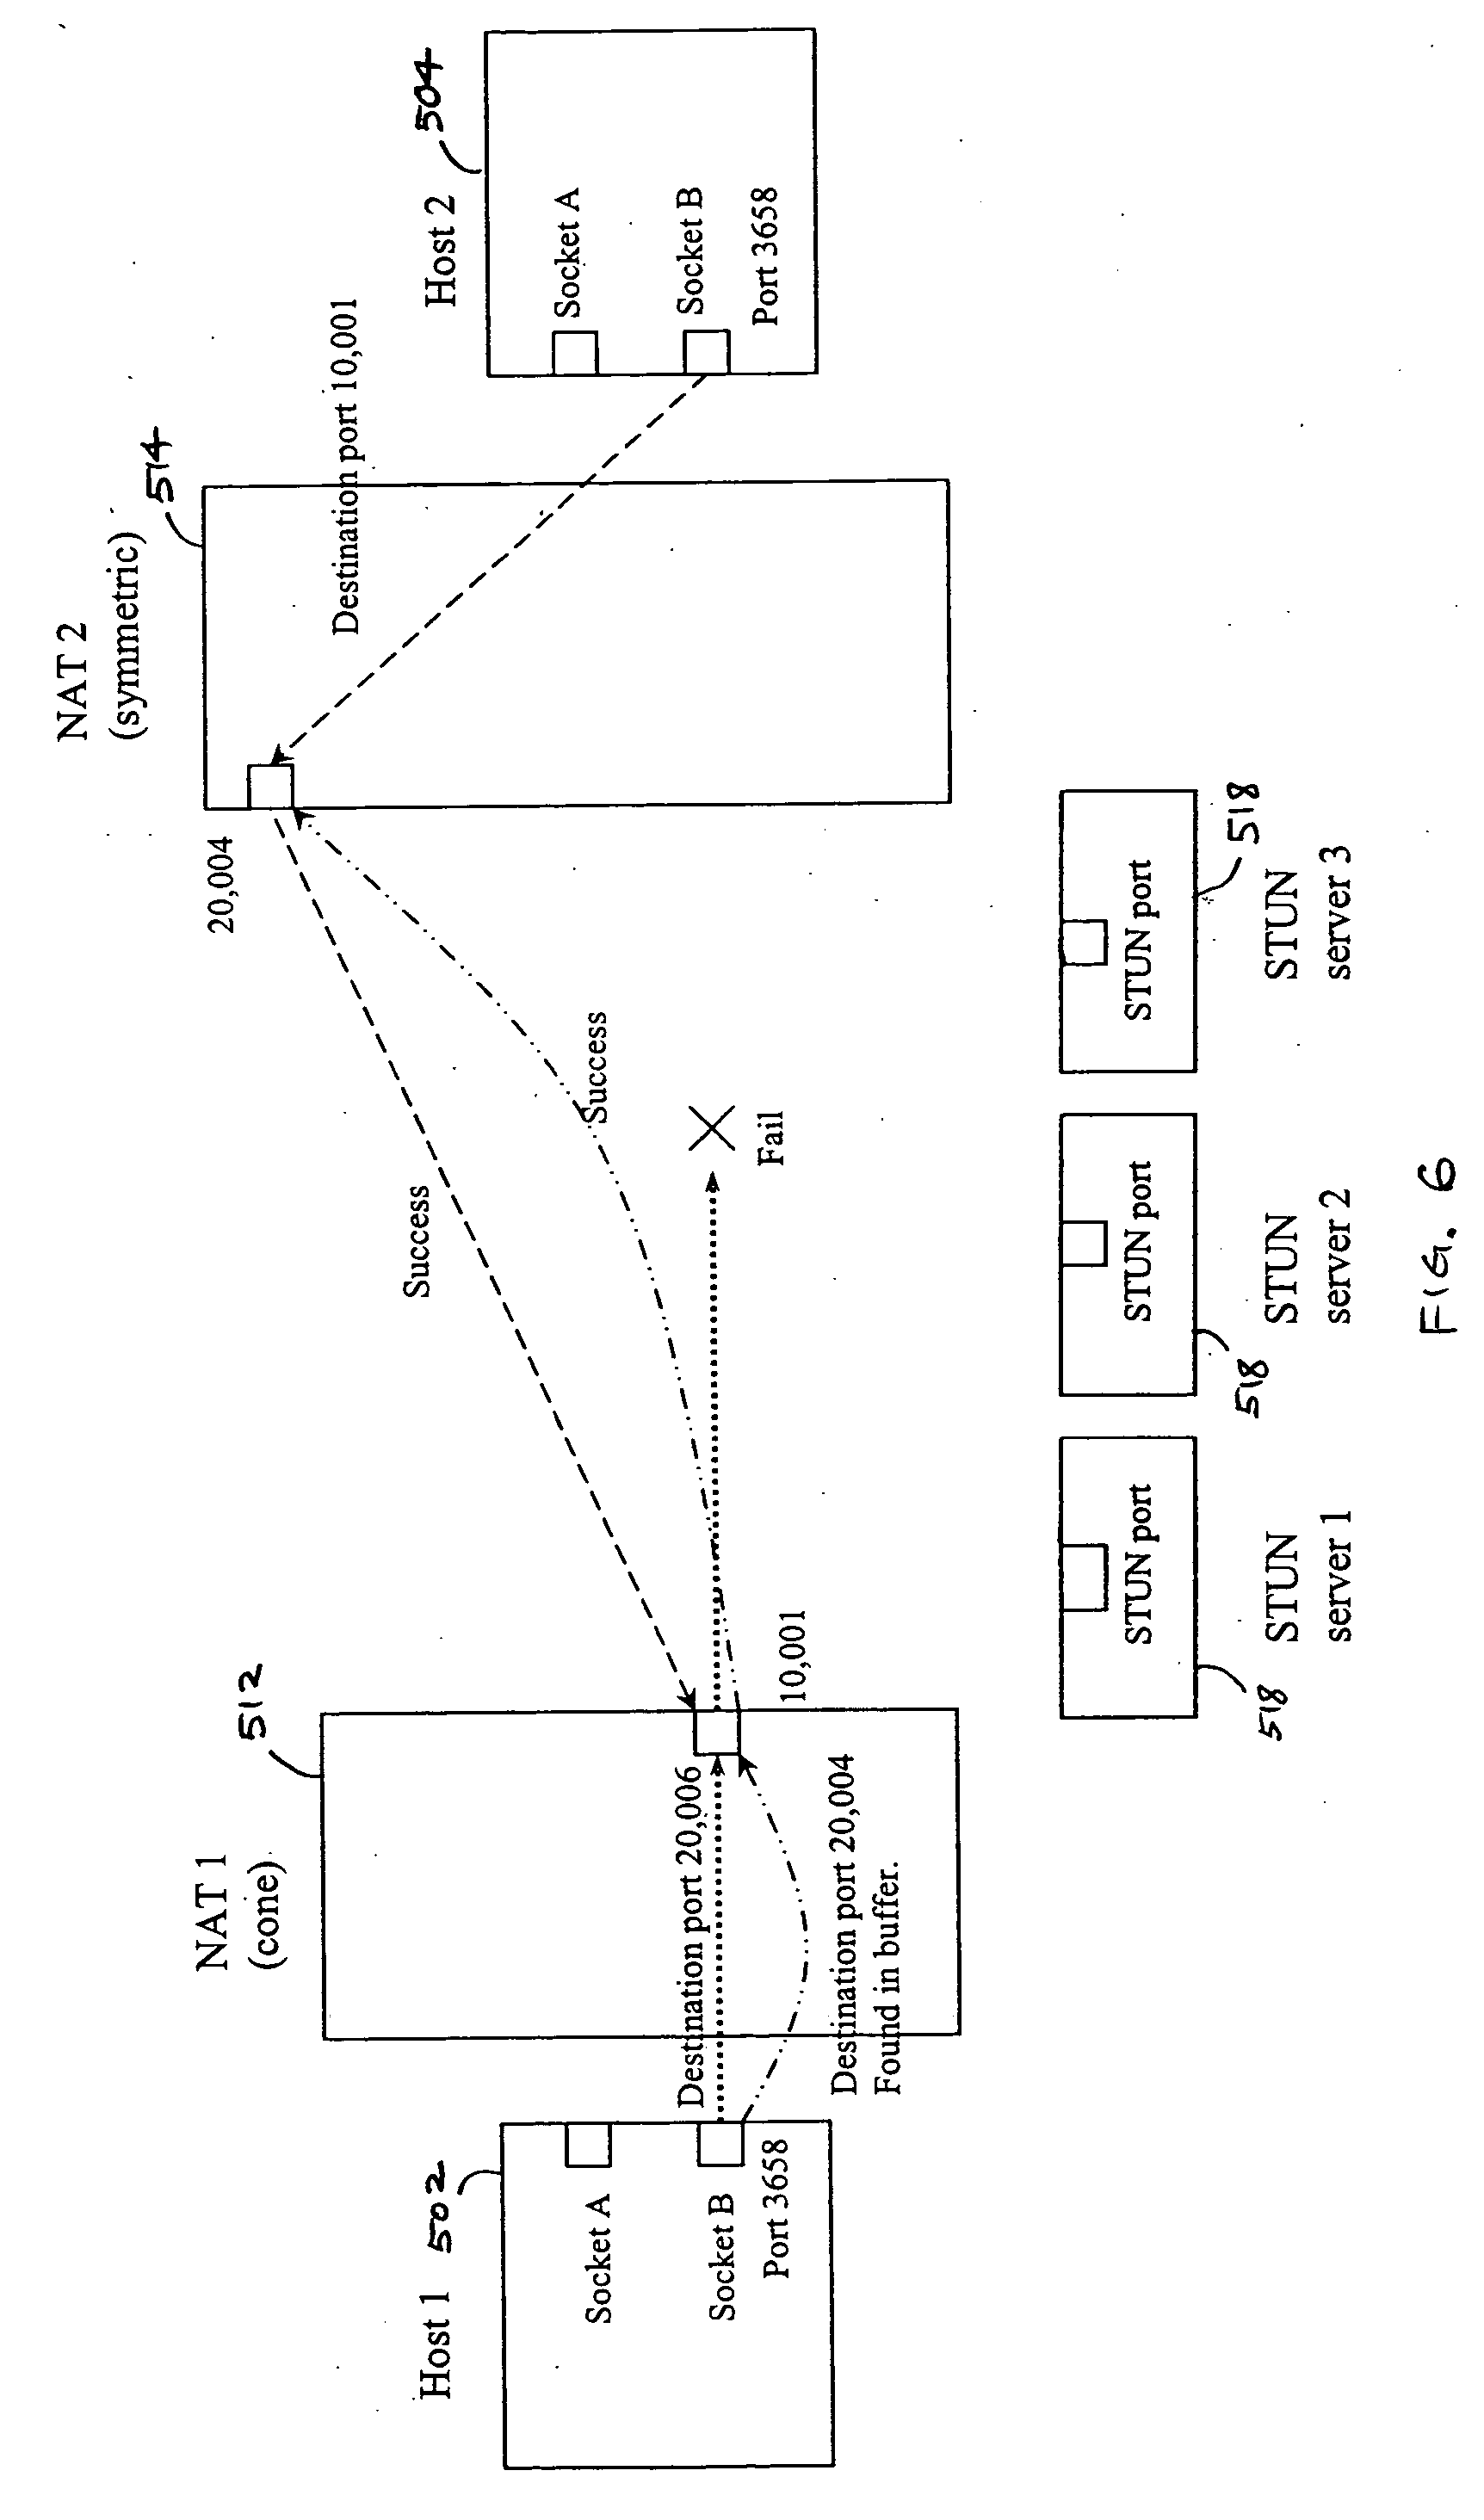 US20060075127A1 - Multiplayer peer-to-peer connection across